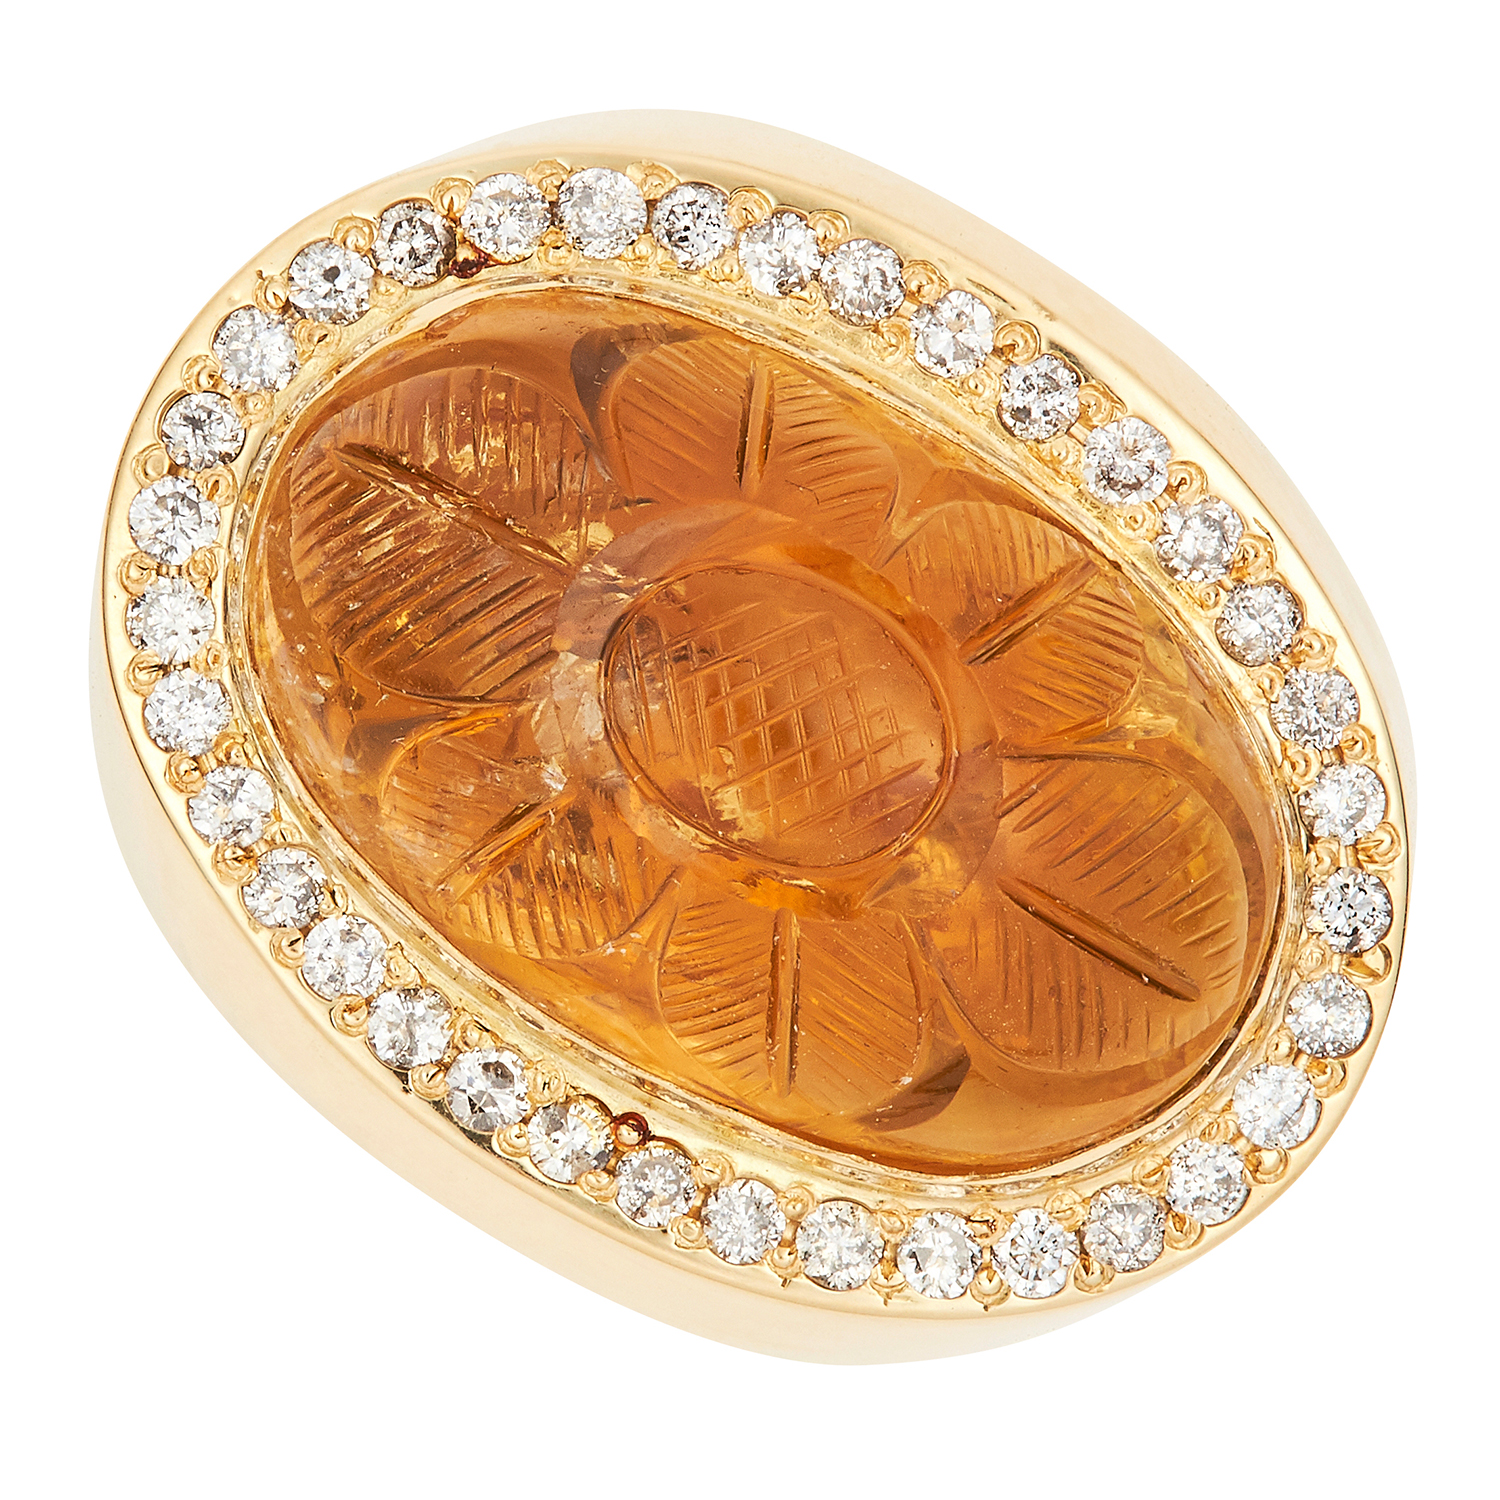 Los 32 - VINTAGE CITRINE AND DIAMOND RING set with an oval citrine cabochon of 13.84 carats and round cut